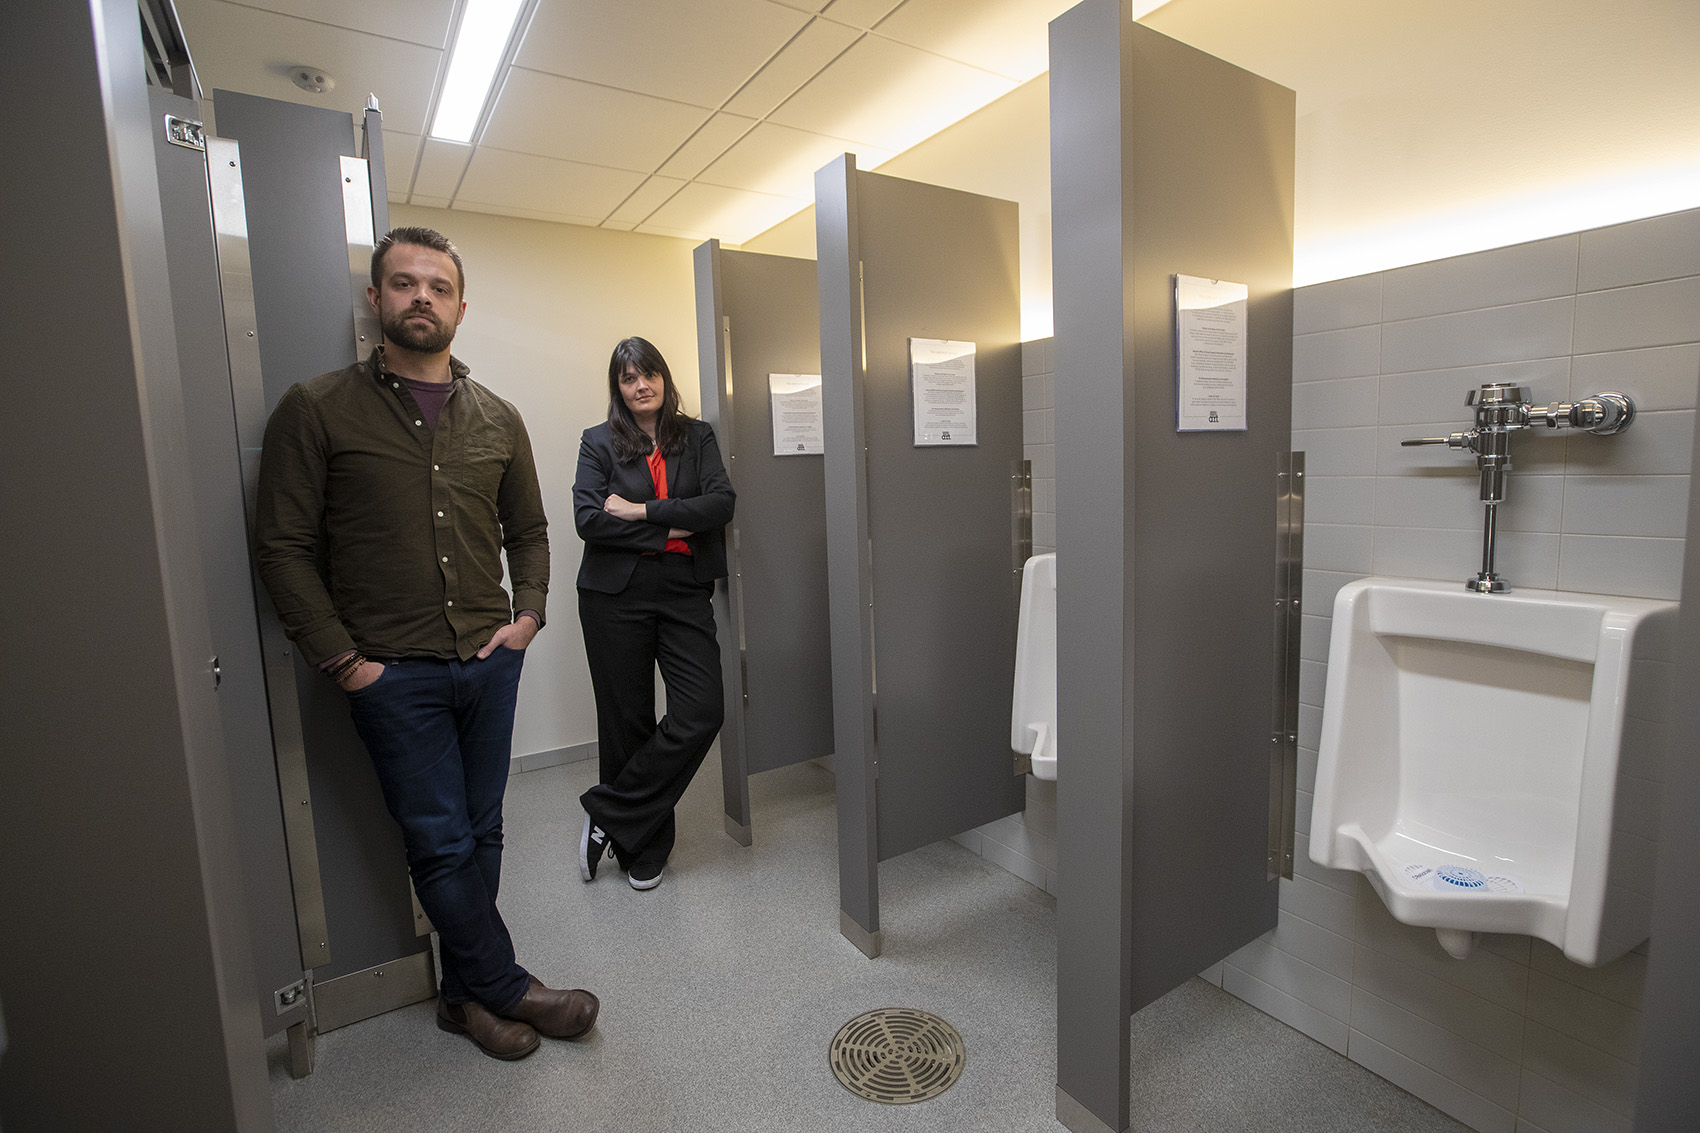 The american repertory theater has opened traditional mens and womens rooms for use by all